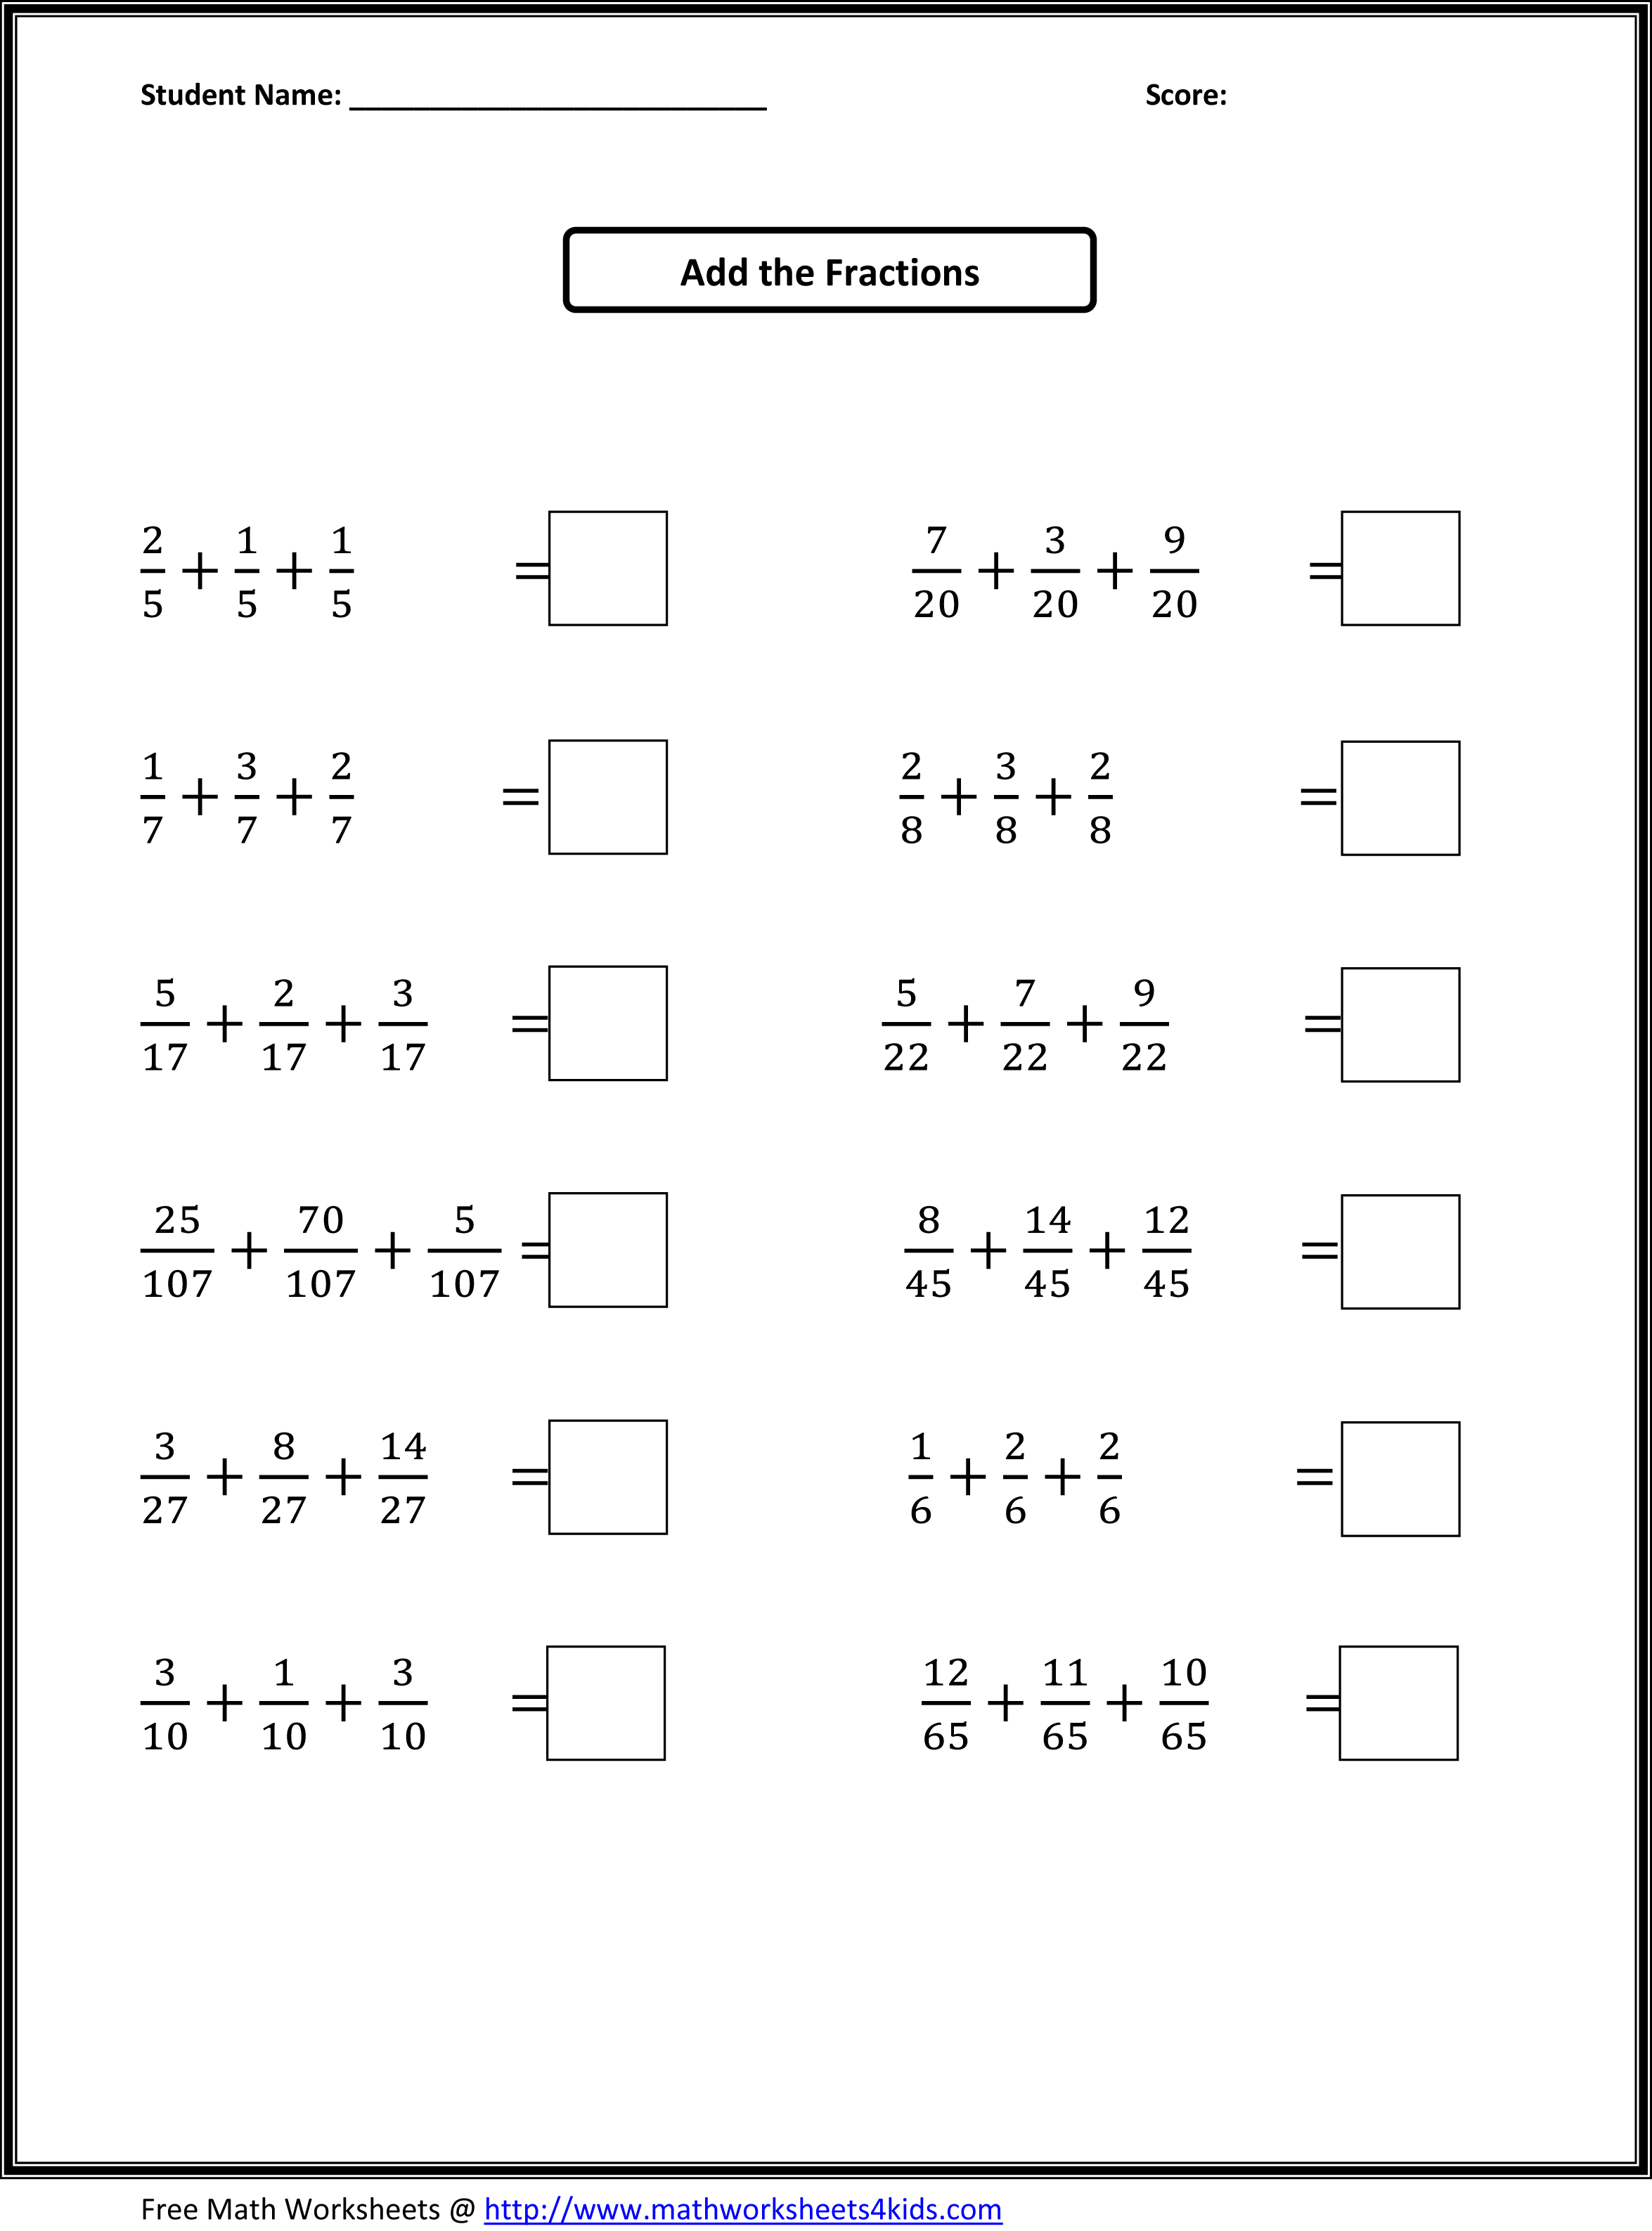 math worksheet : high quality equivalent fractions worksheets for 4th grade photos : Adding Fractions Worksheets 4th Grade